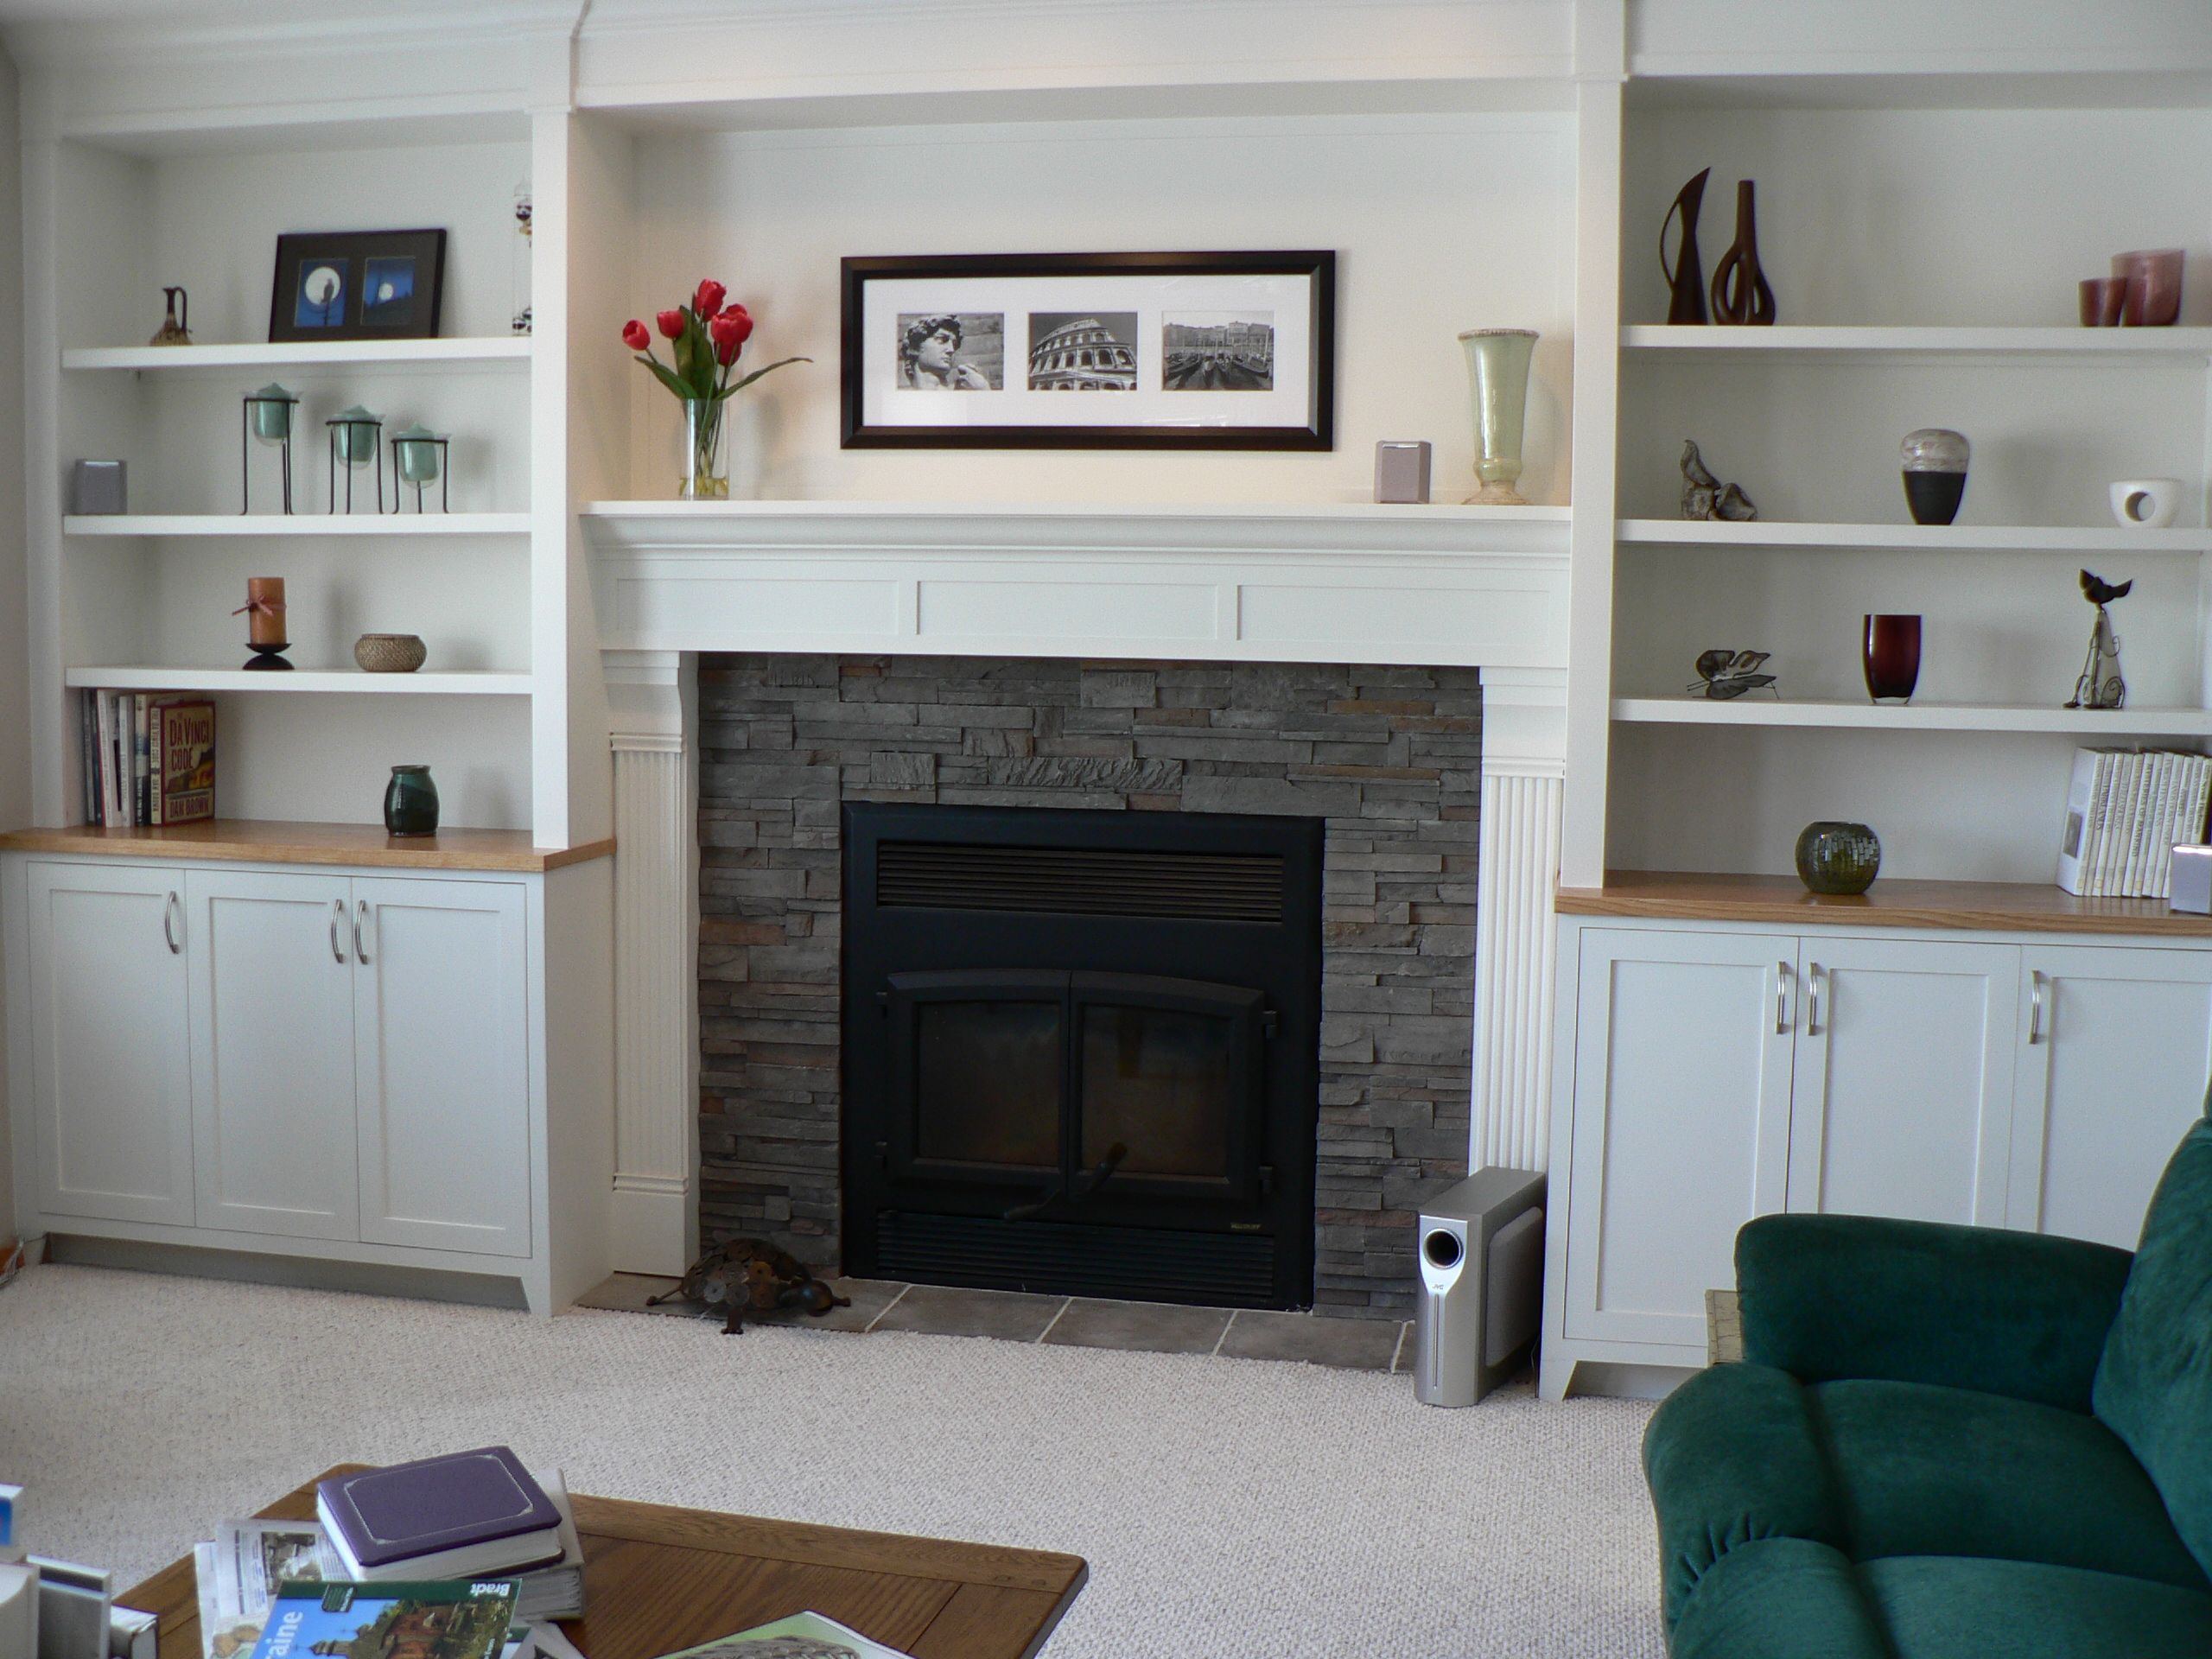 Fireplace Mantle And Surround With Cabinets/shelves | Fireplaces In